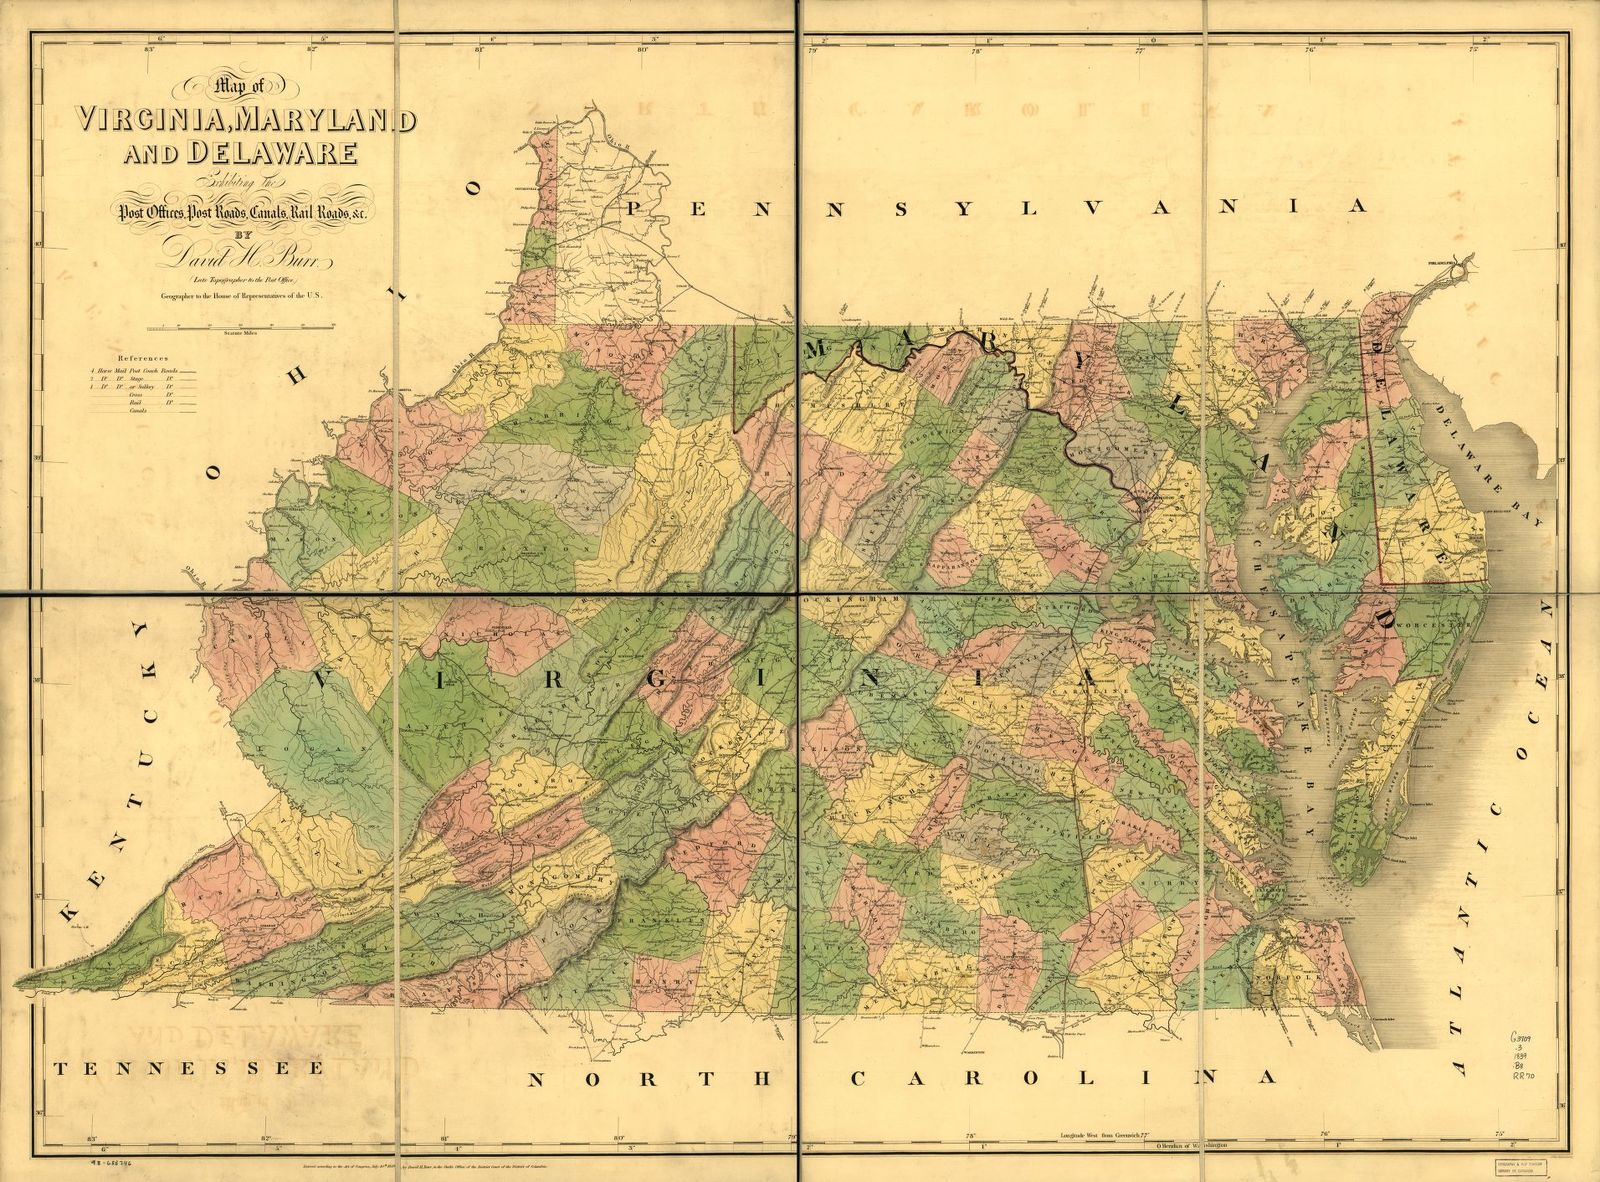 Map of Virginia, Maryland and Delaware exhibiting the post offices ...